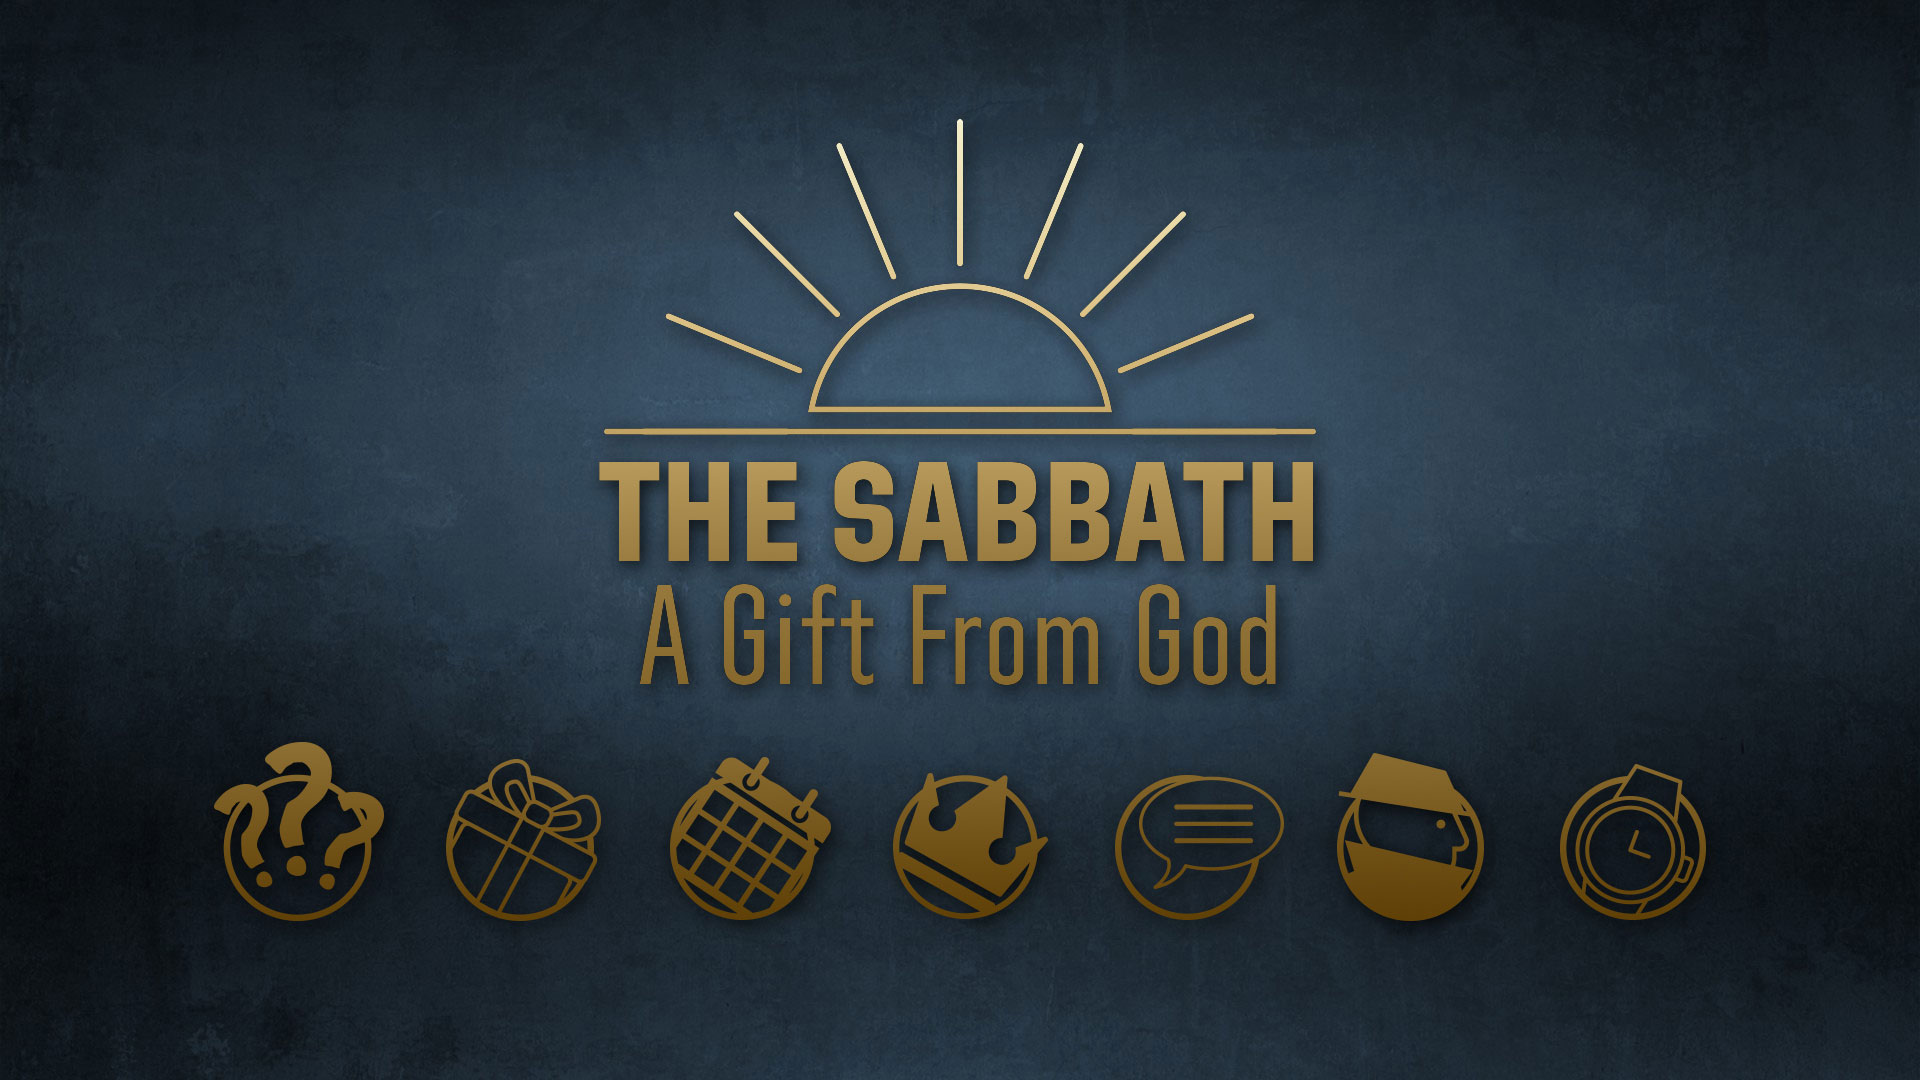 The Sabbath: A Gift From God